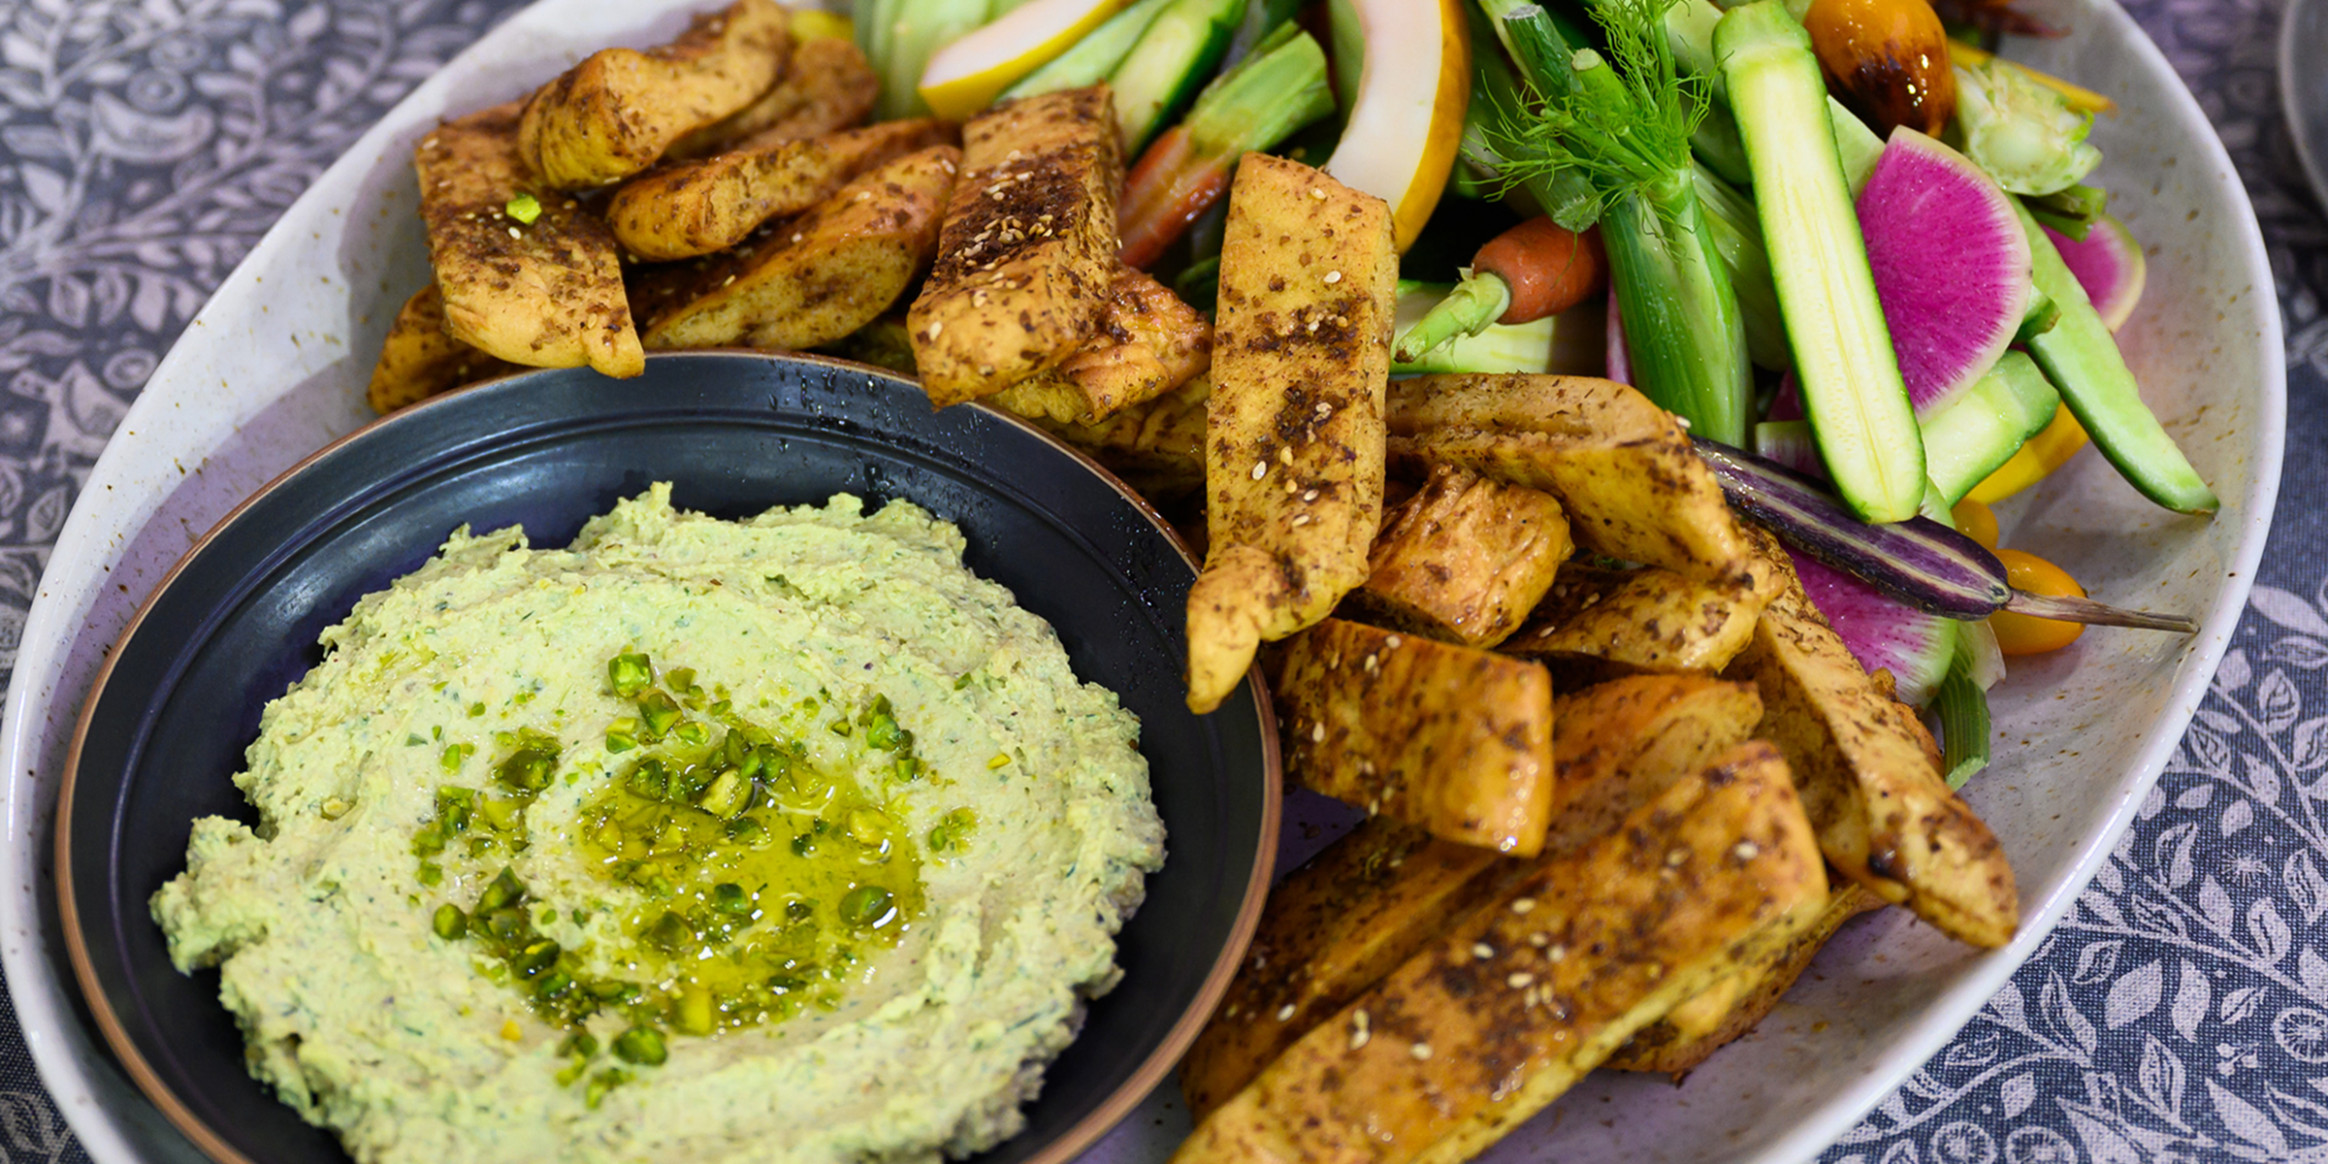 Whipped Feta Dip With Pistachios - Today Show Food Recipes